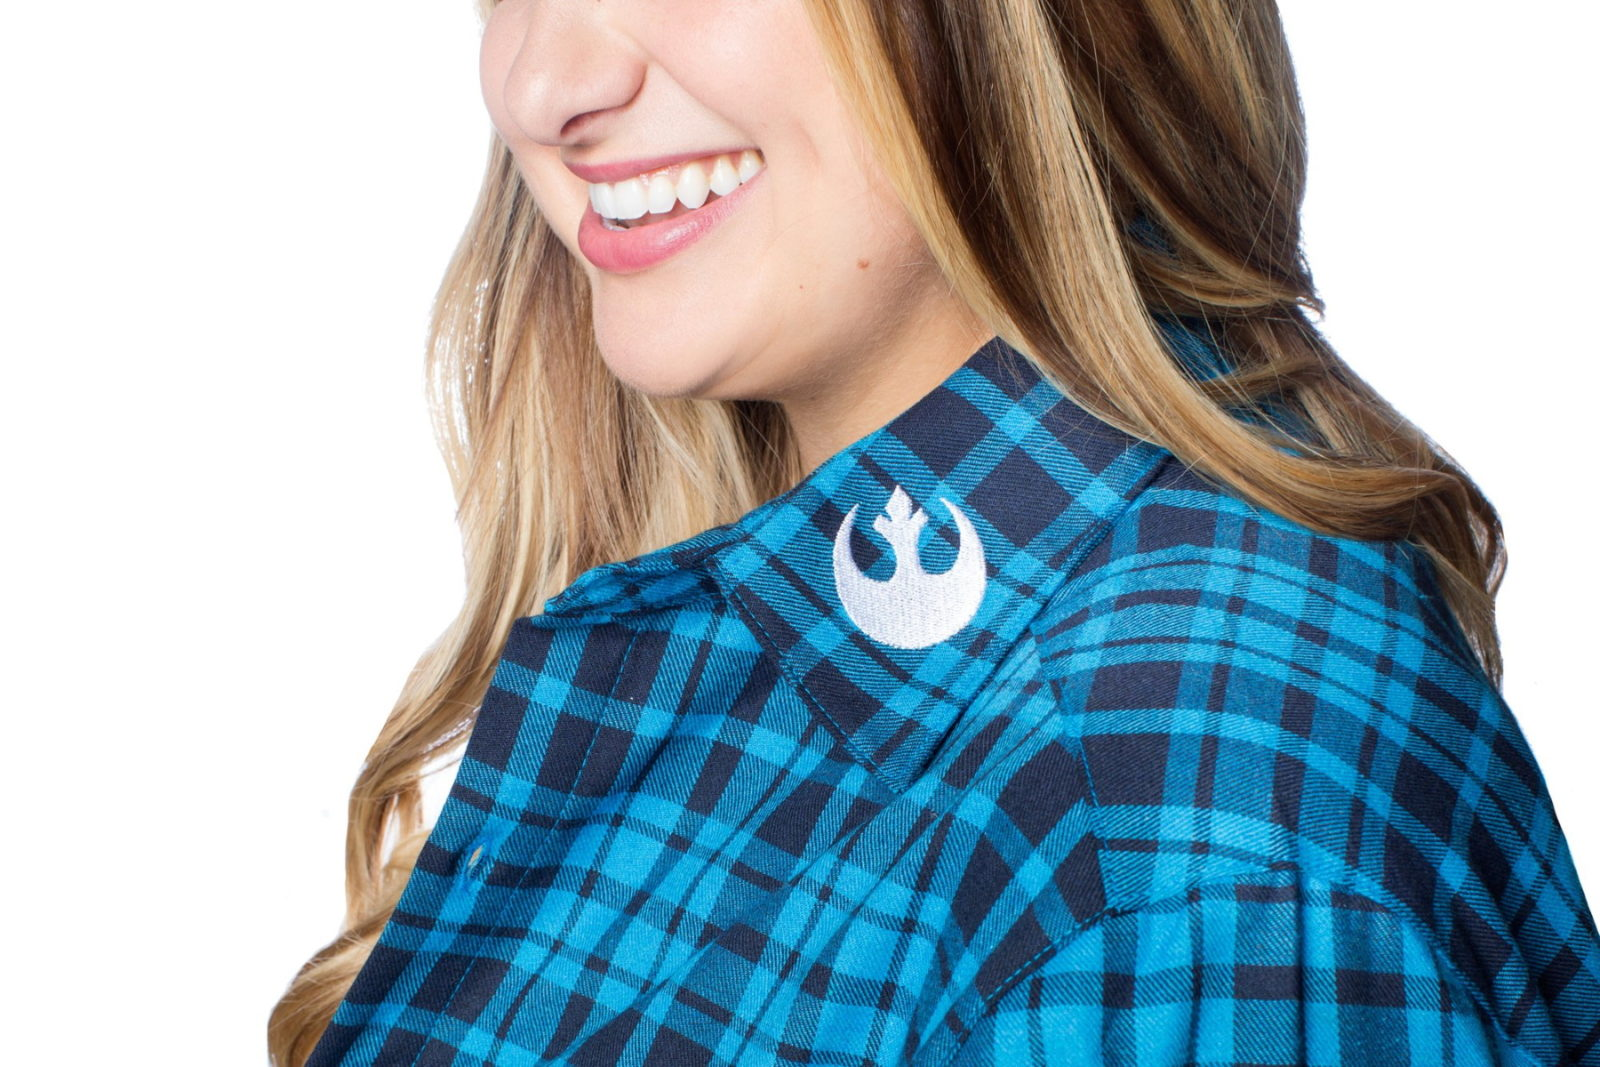 Cakeworthy x Star Wars May The Force Be With You Flannel Shirt